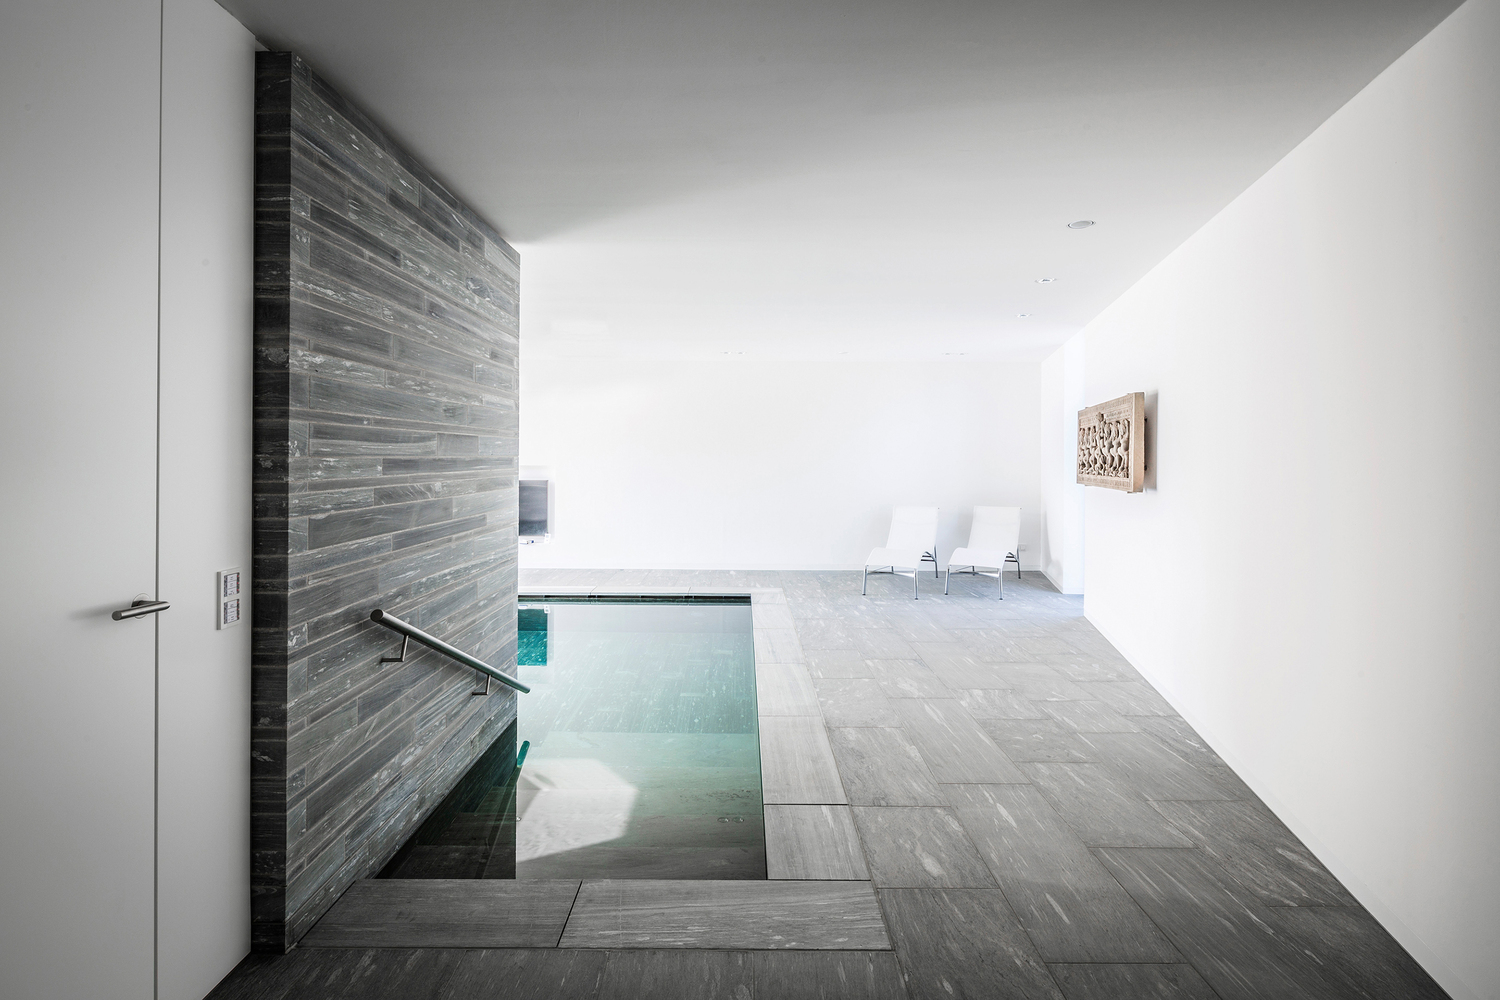 2_Swimming Pool House_Corneille Uedingslohmann Architekten_Inspirationist